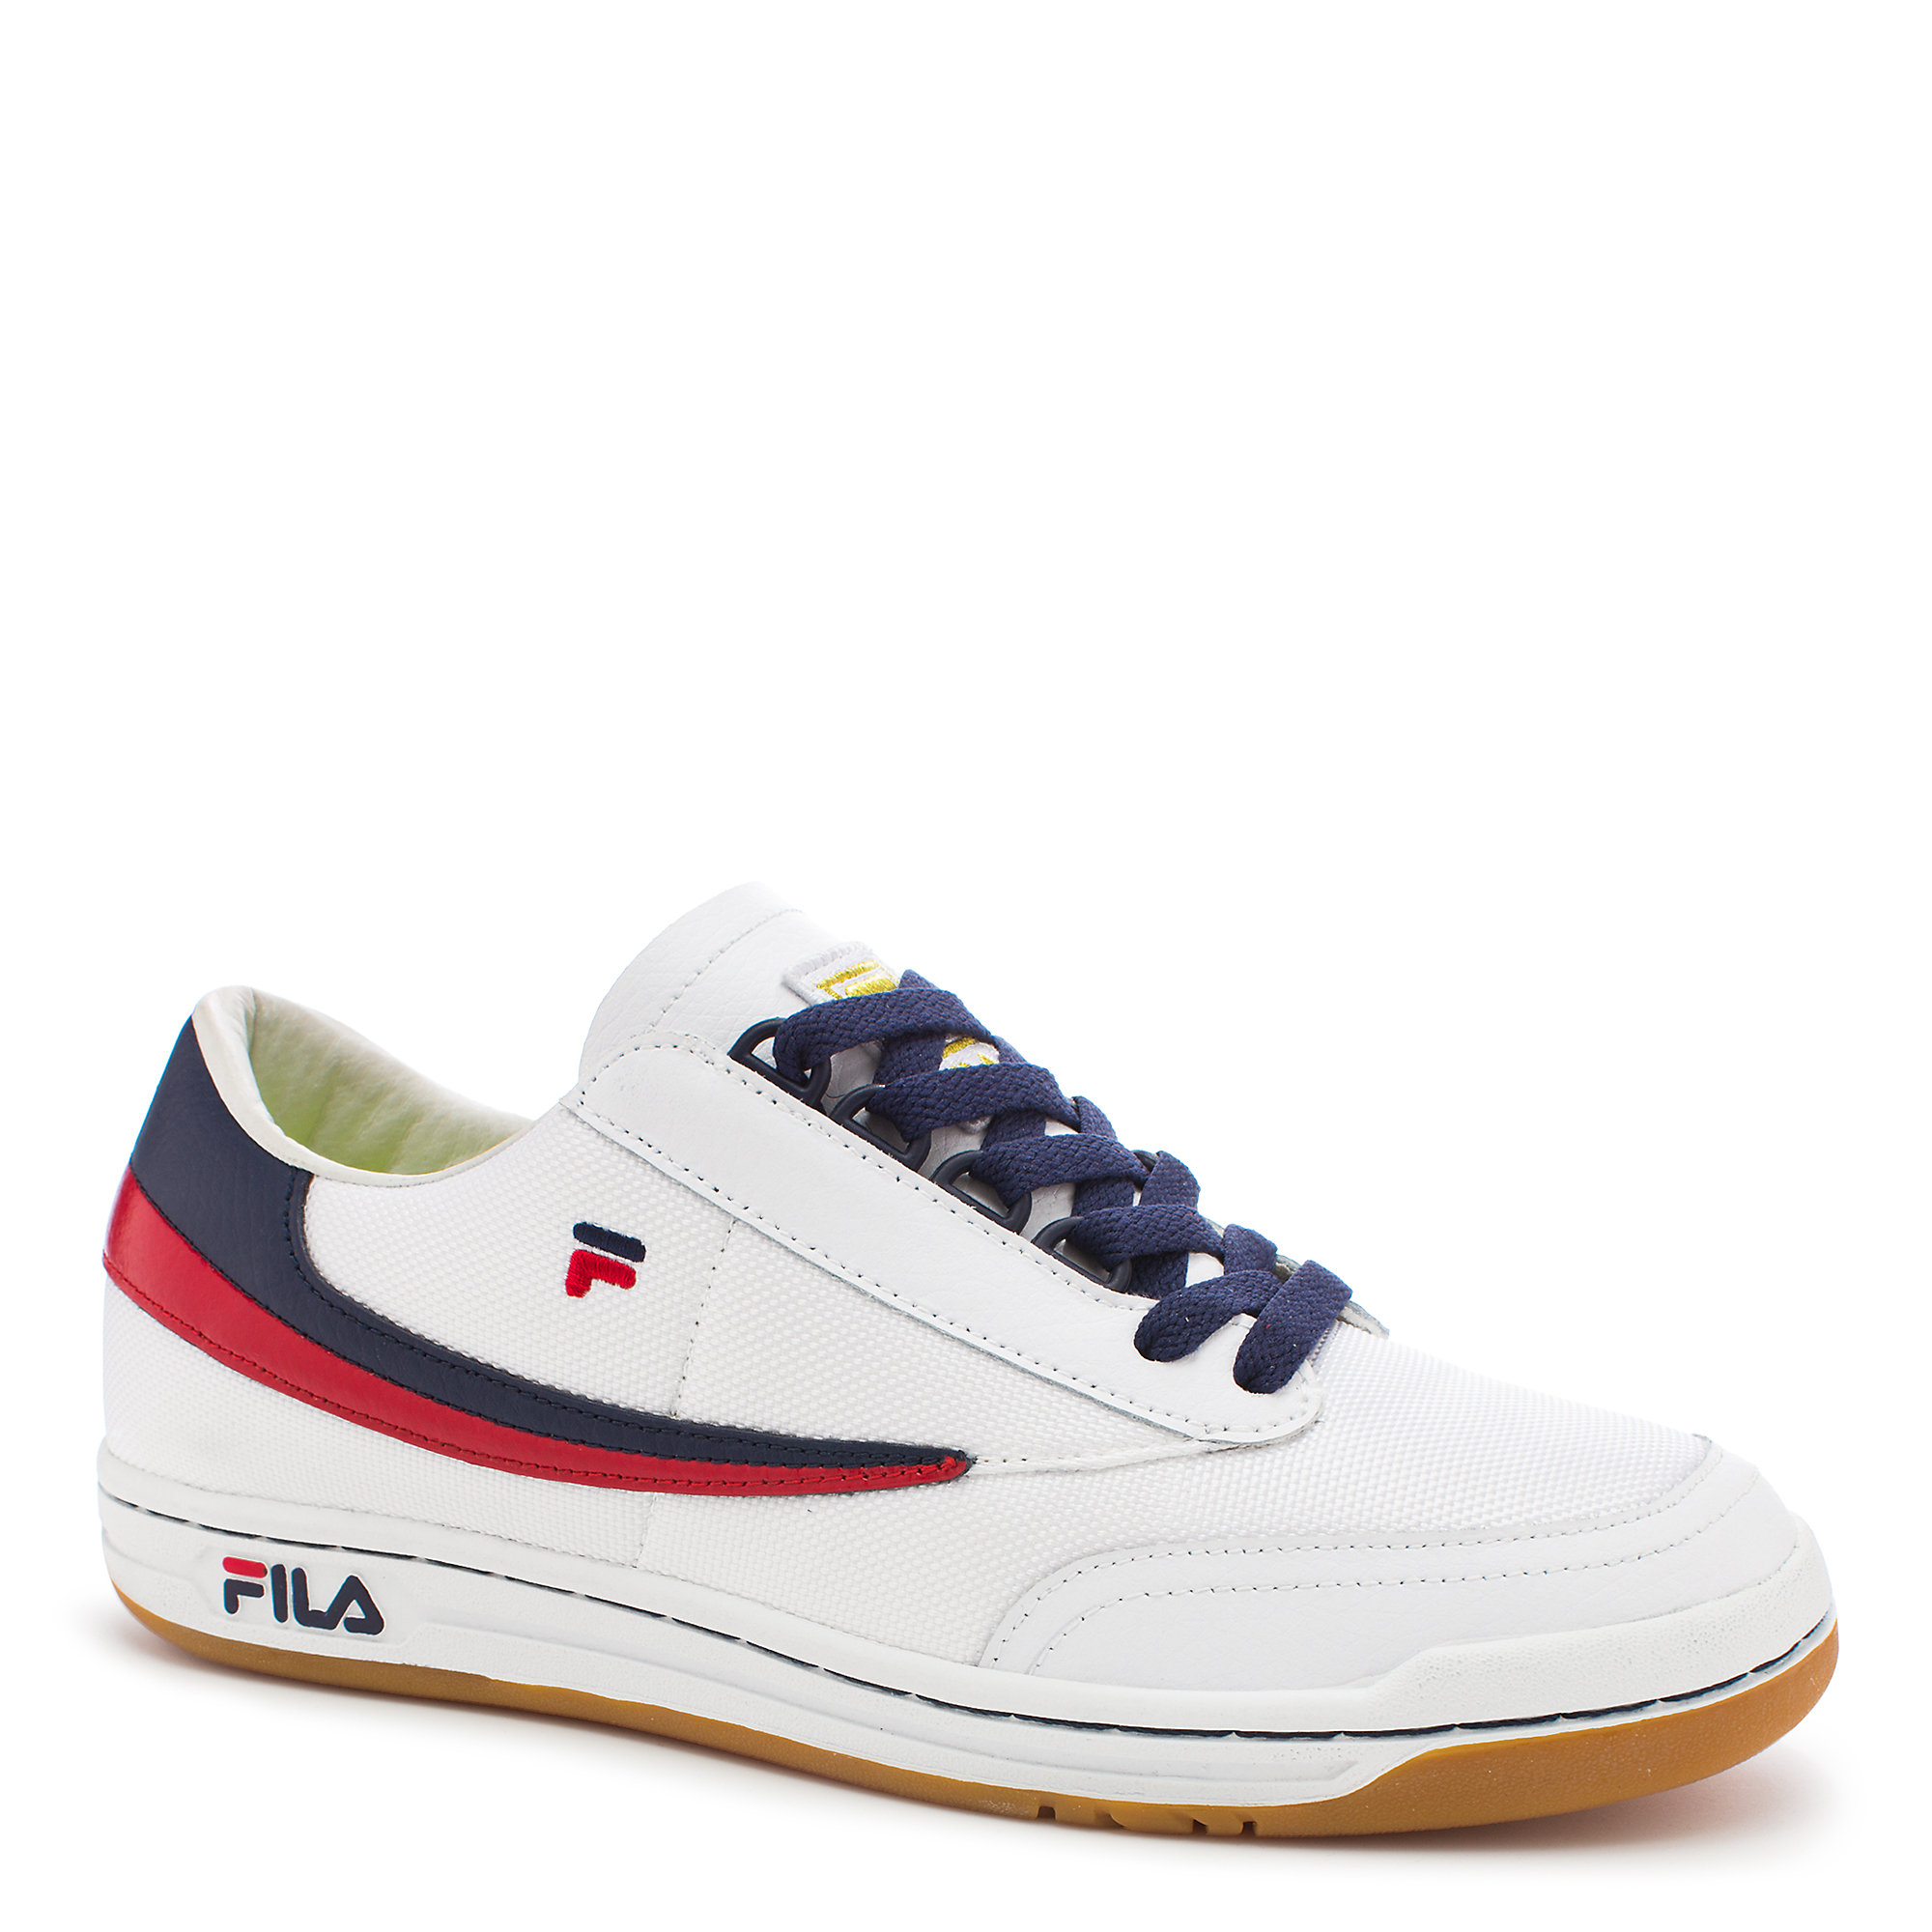 Fila Men U0026 39 S Original Tennis